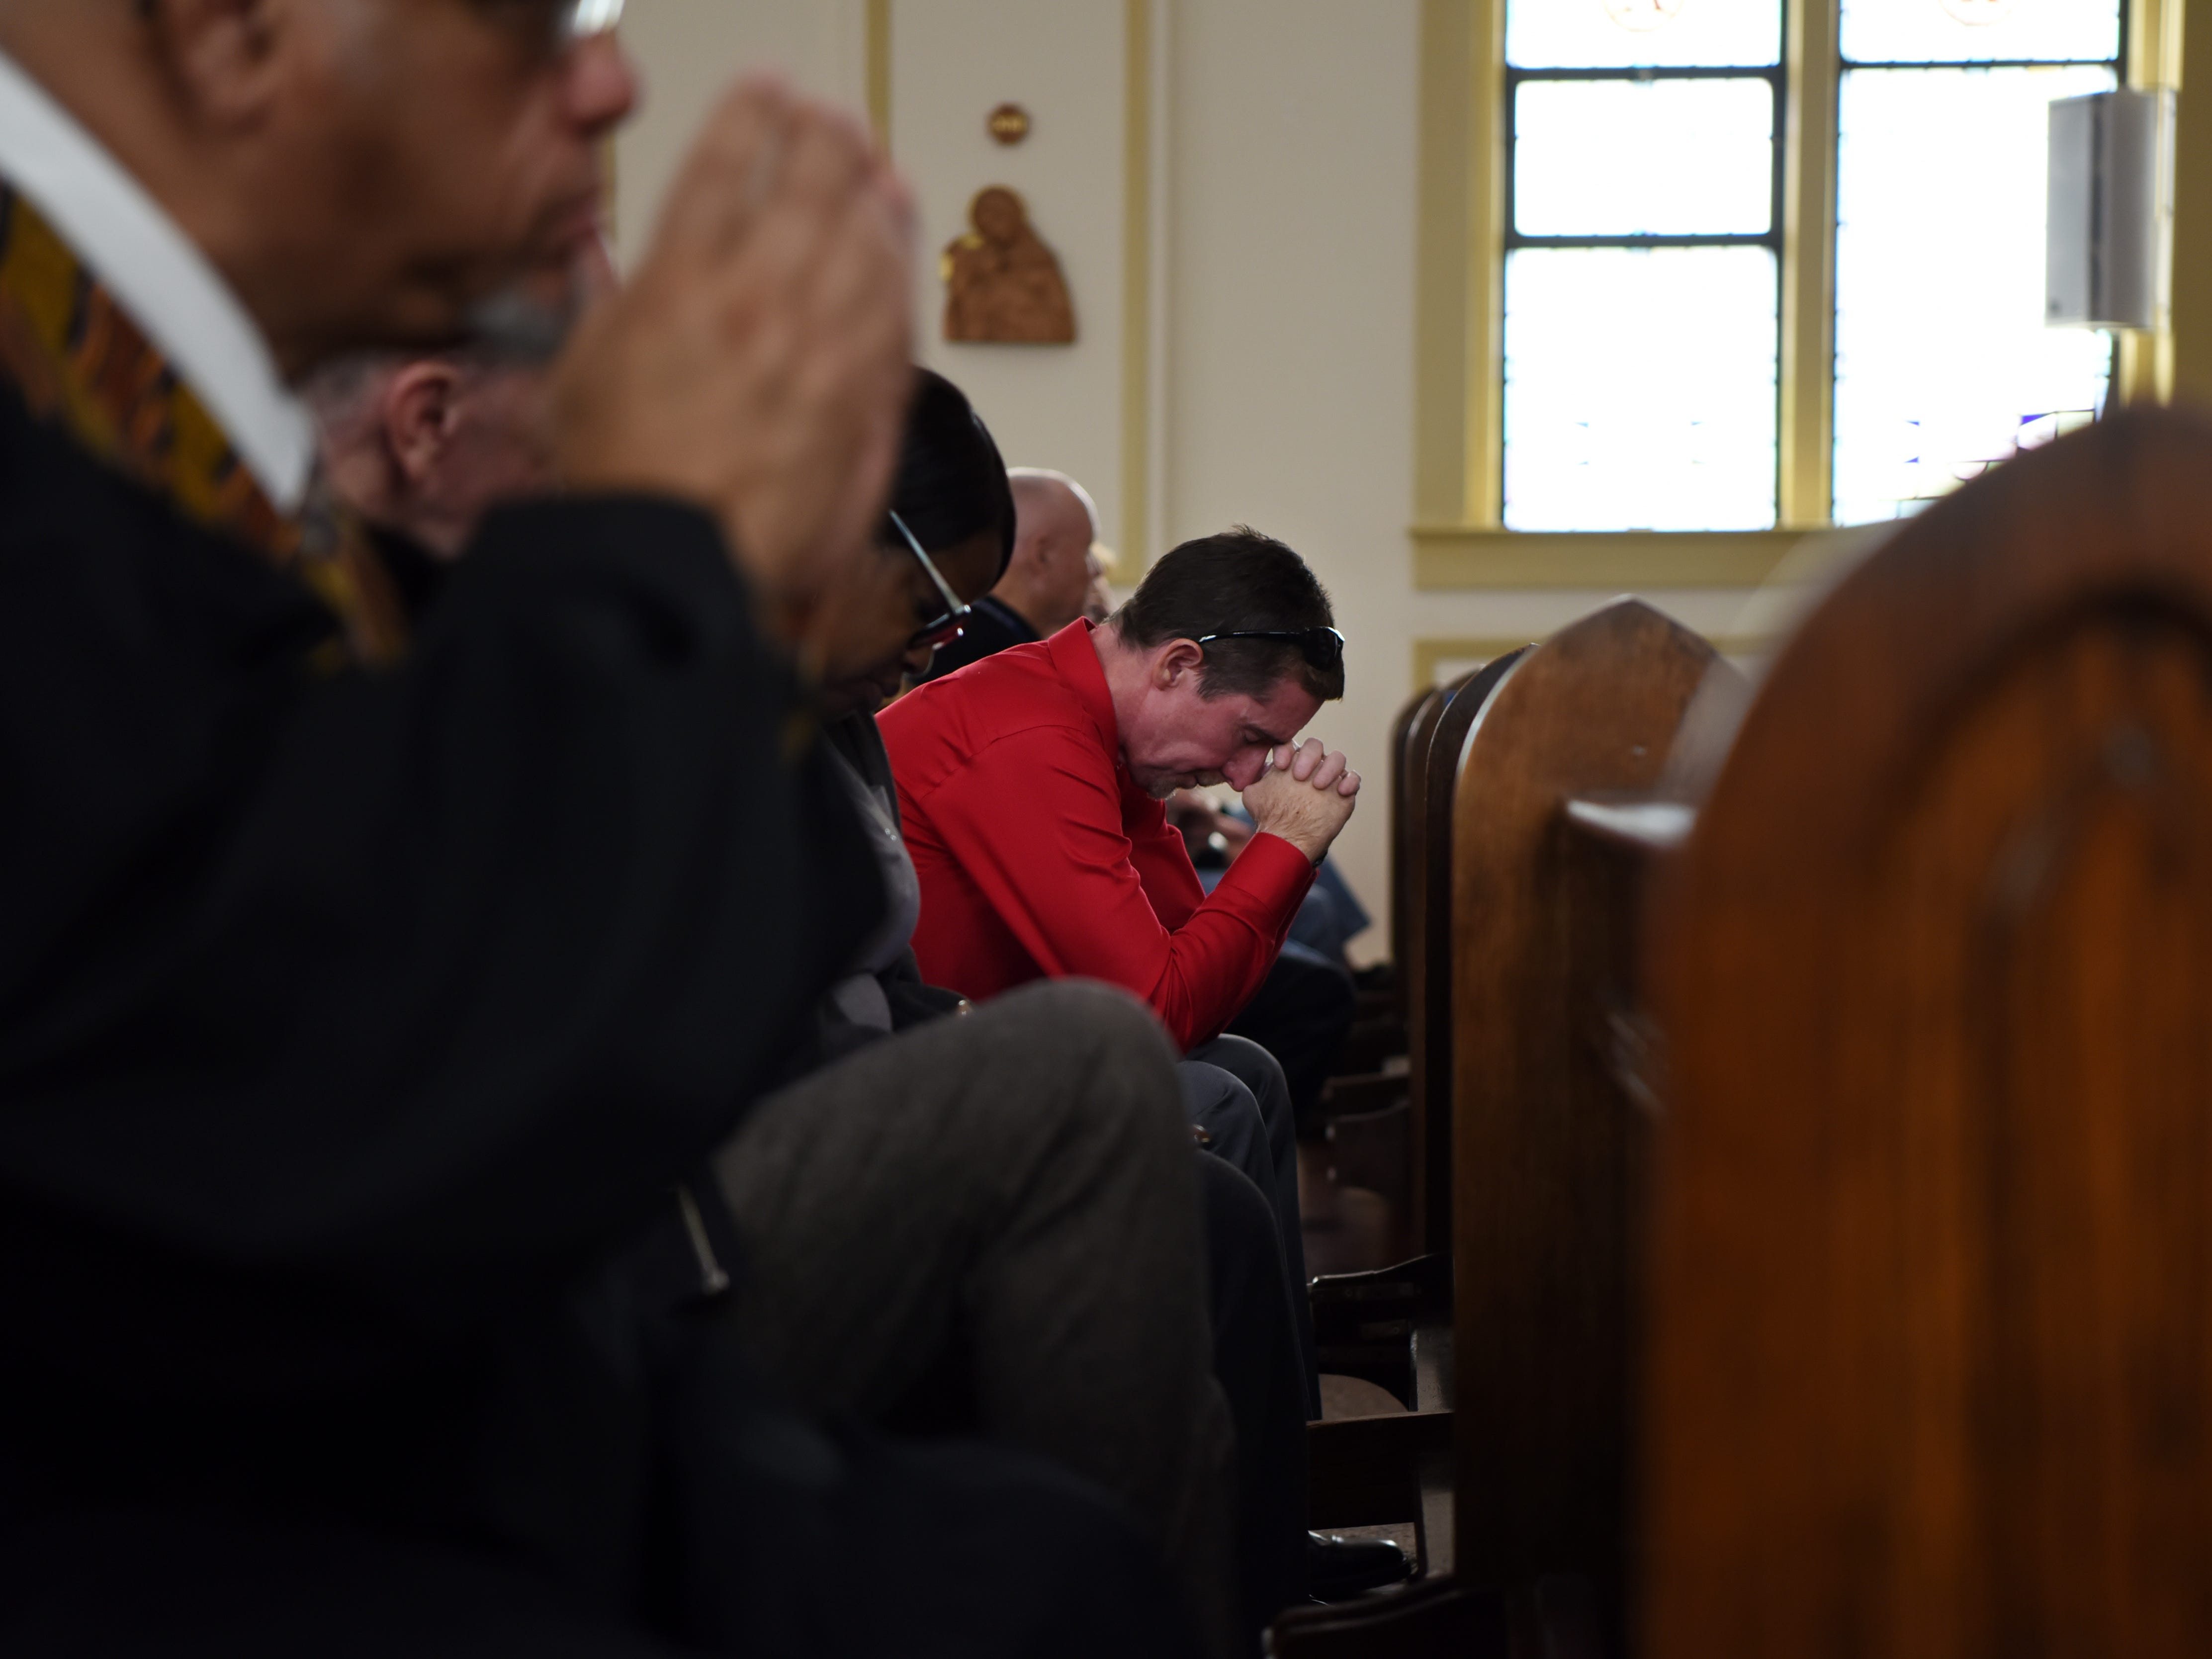 John, the drummer in the Straight & Narrow Gospel Choir, prays during Mass at St. Joseph's Roman Catholic Church in Lincoln Park on Sunday, Oct. 14, 2018.